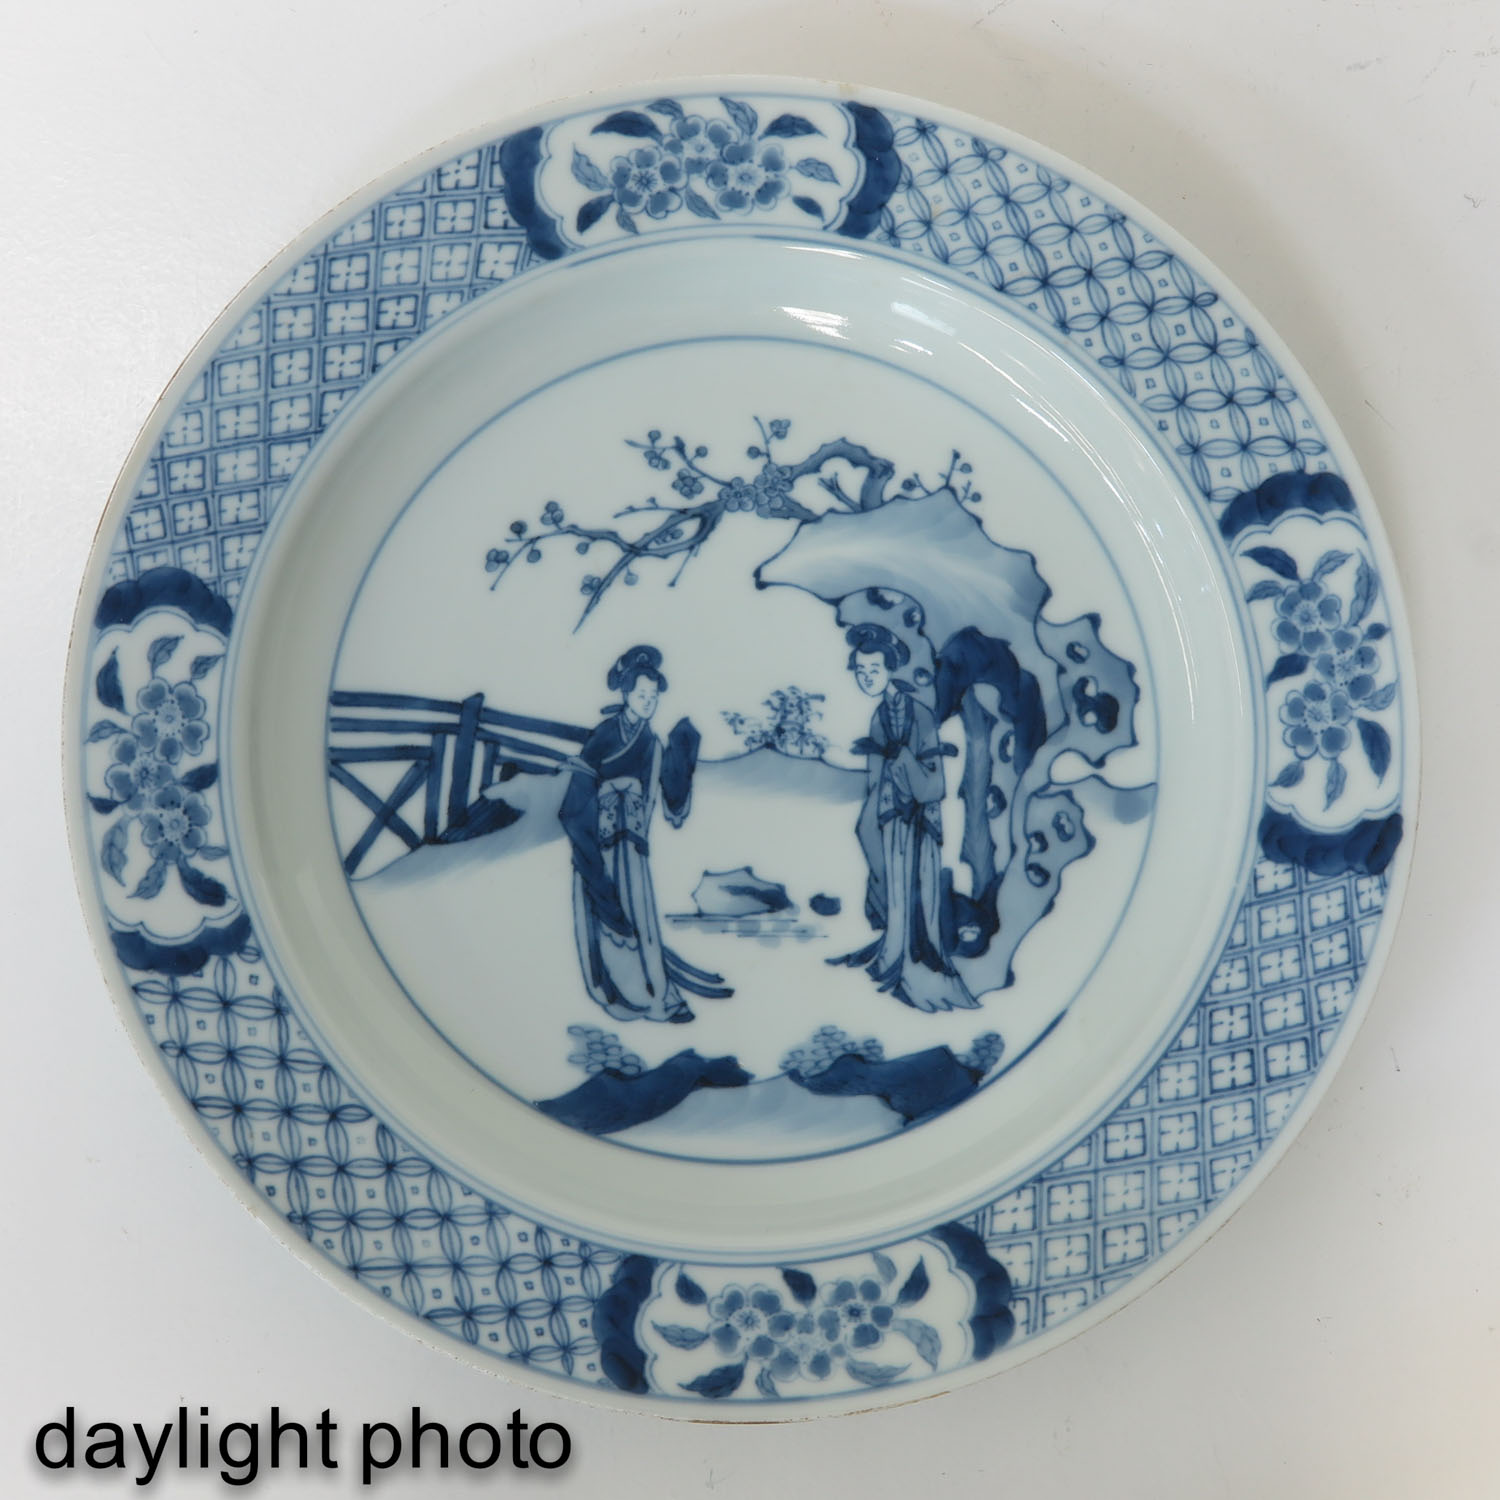 A Blue and White Plate - Image 3 of 6